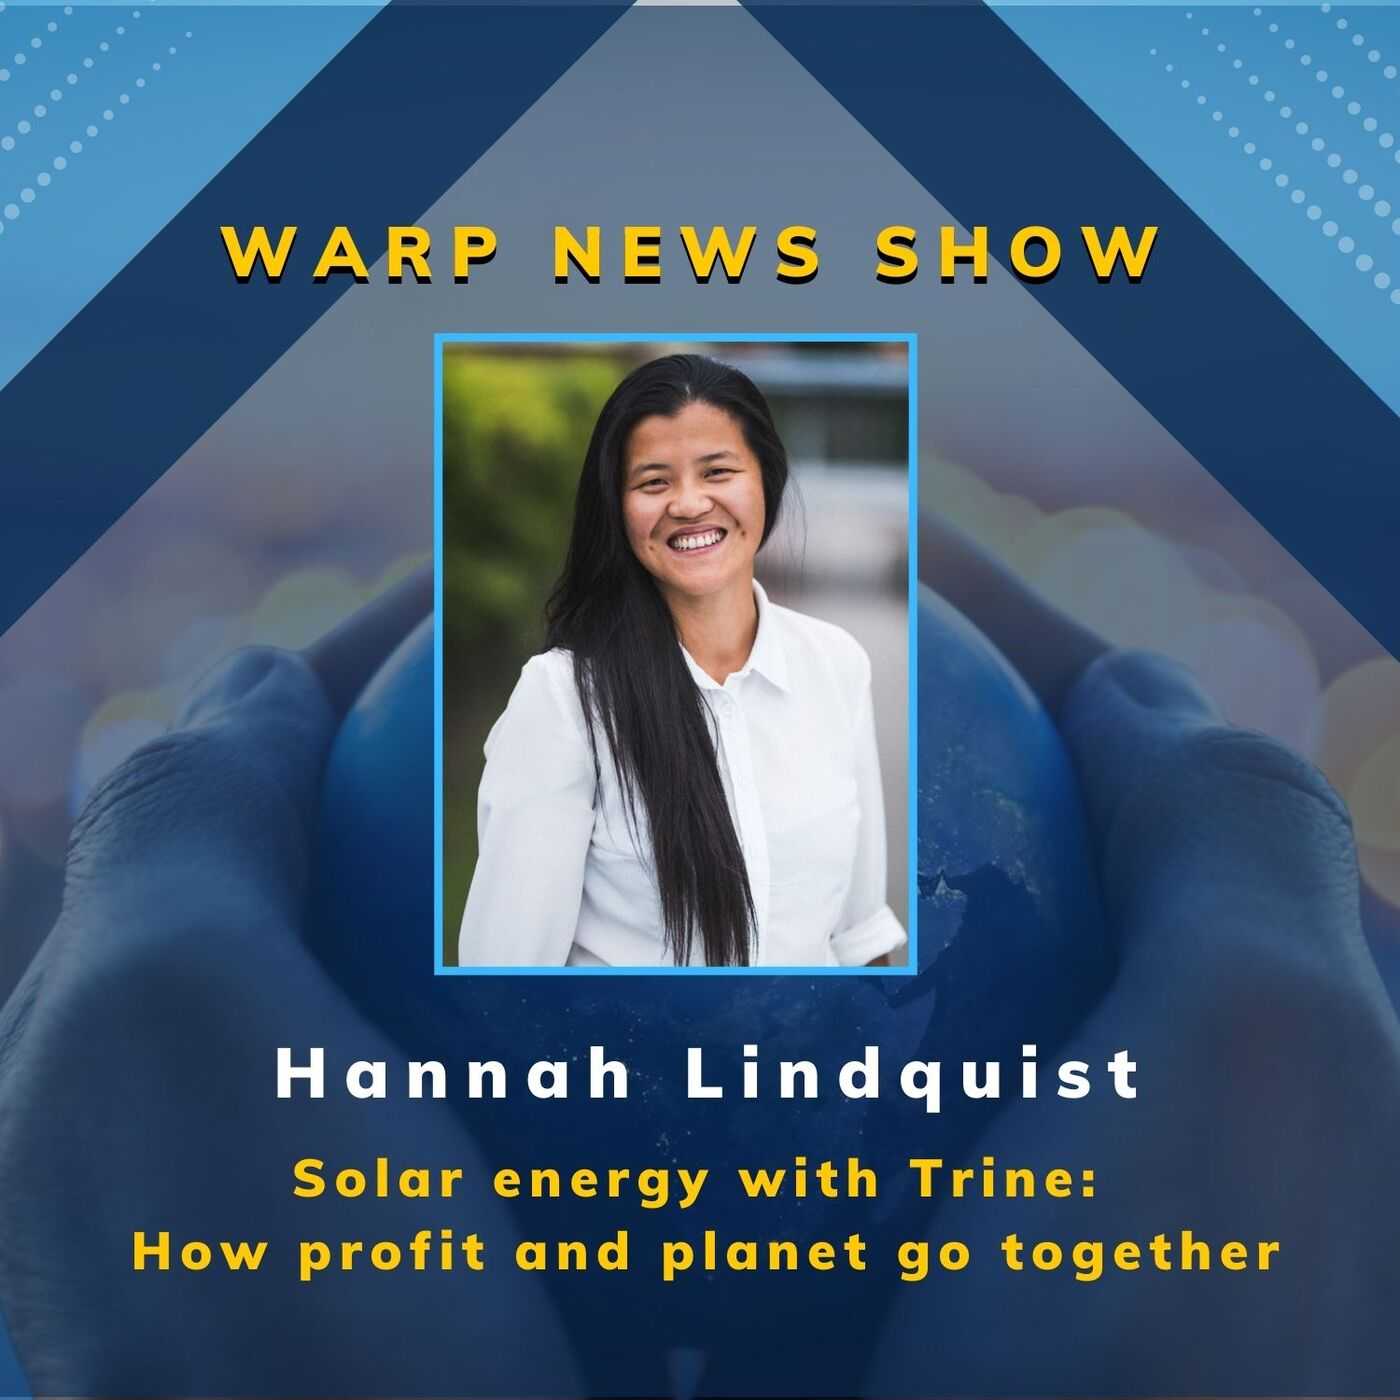 💡 Warp News Show: Trine - Solar energy and how profit and planet go together